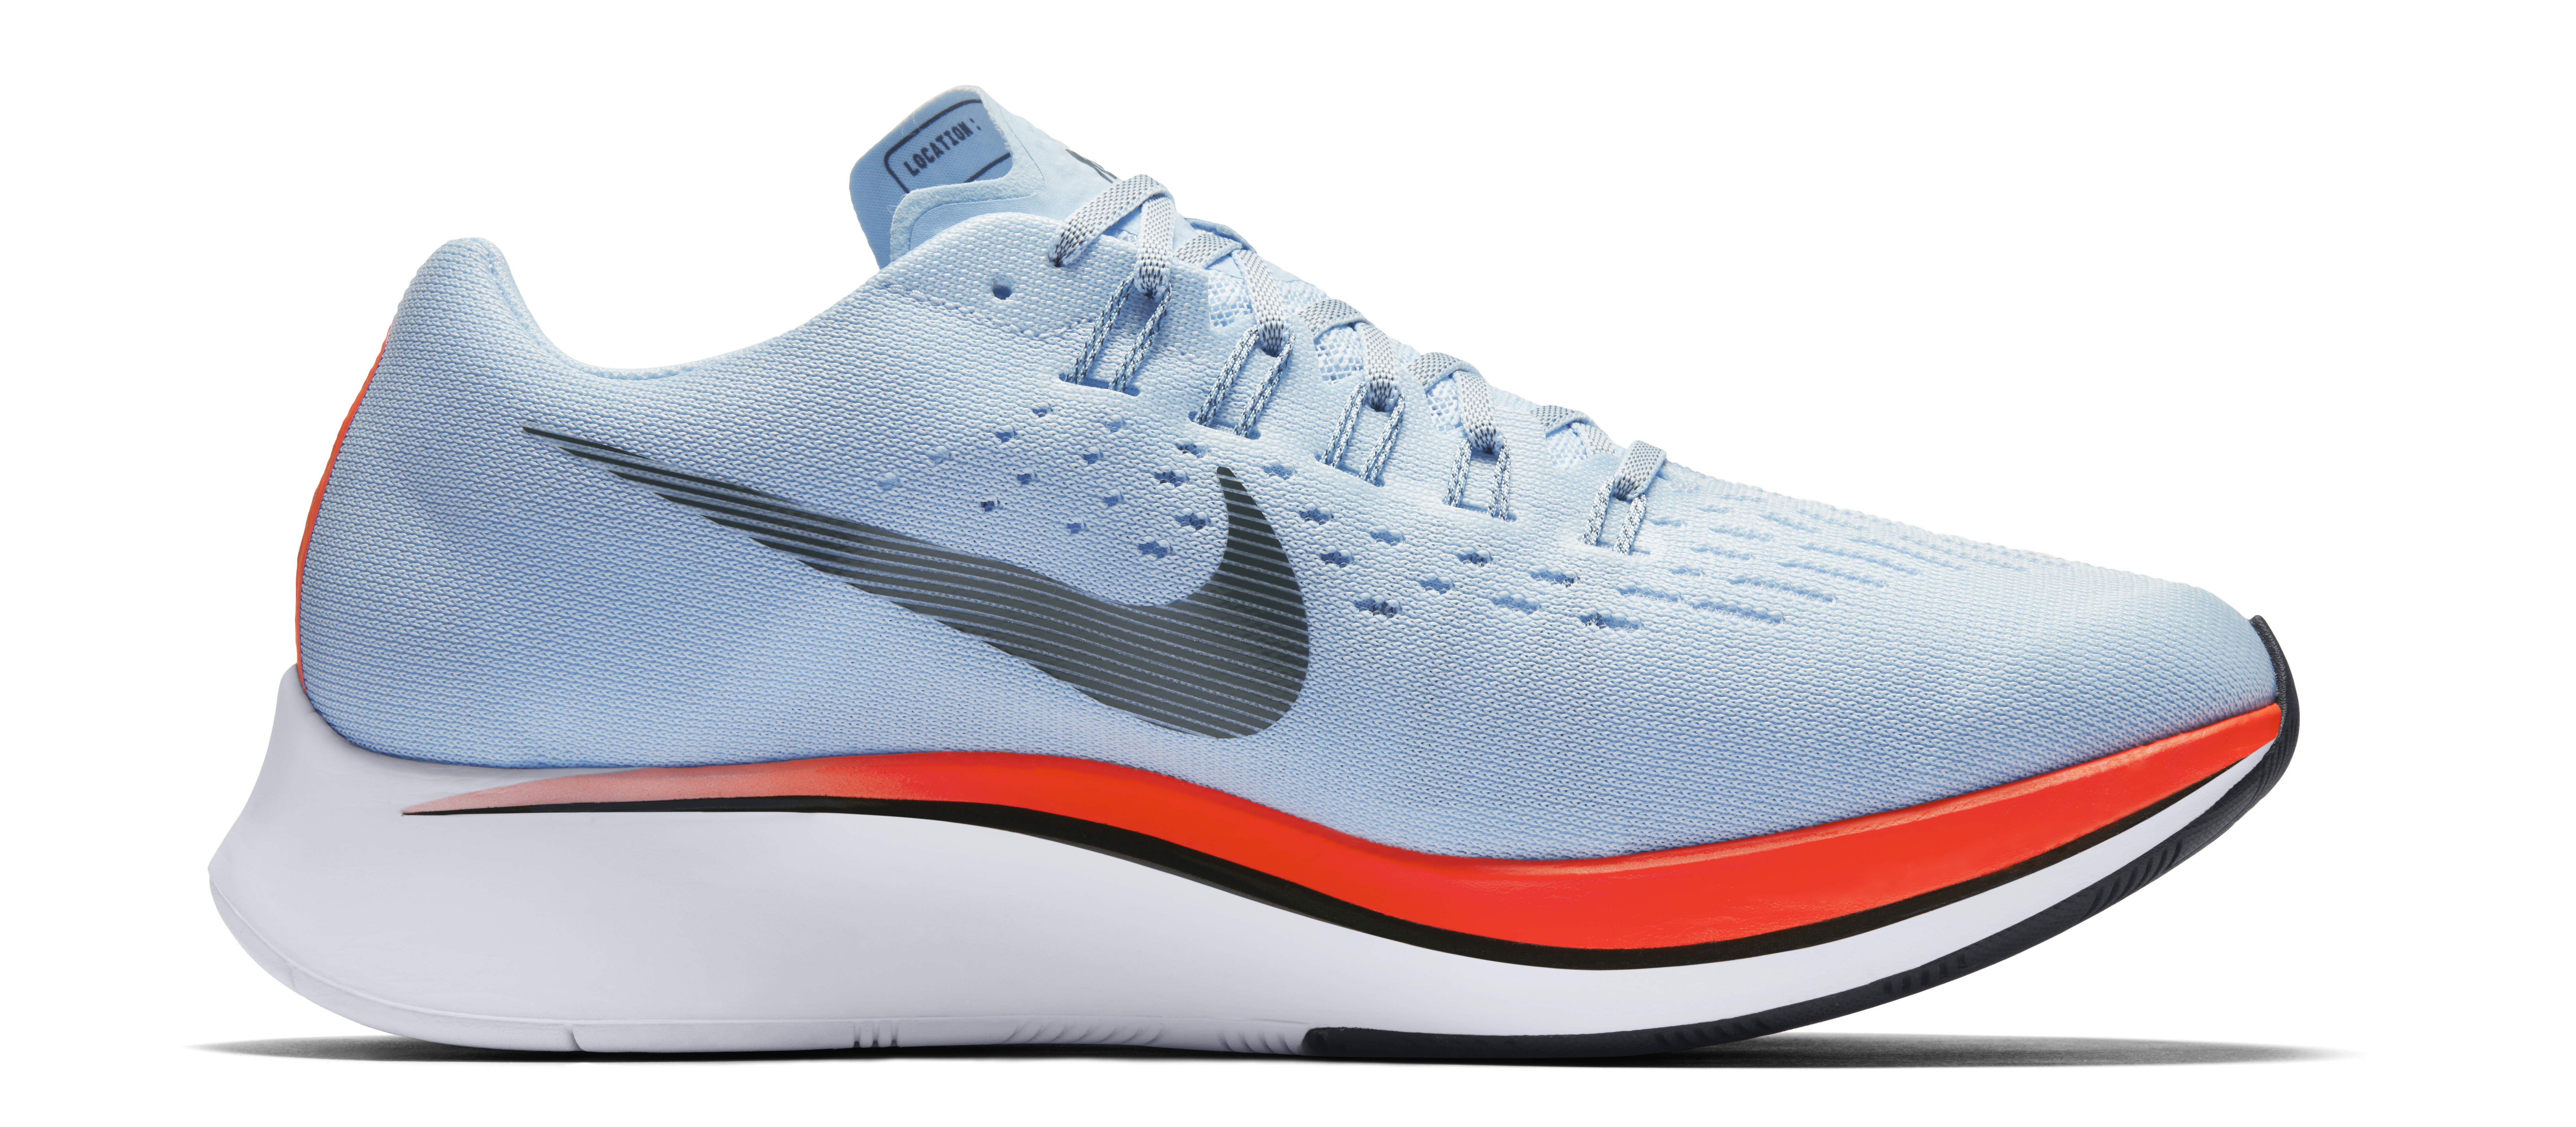 c8bed3a0fc37 Those looking for a more affordable option can turn to the Nike Zoom Fly